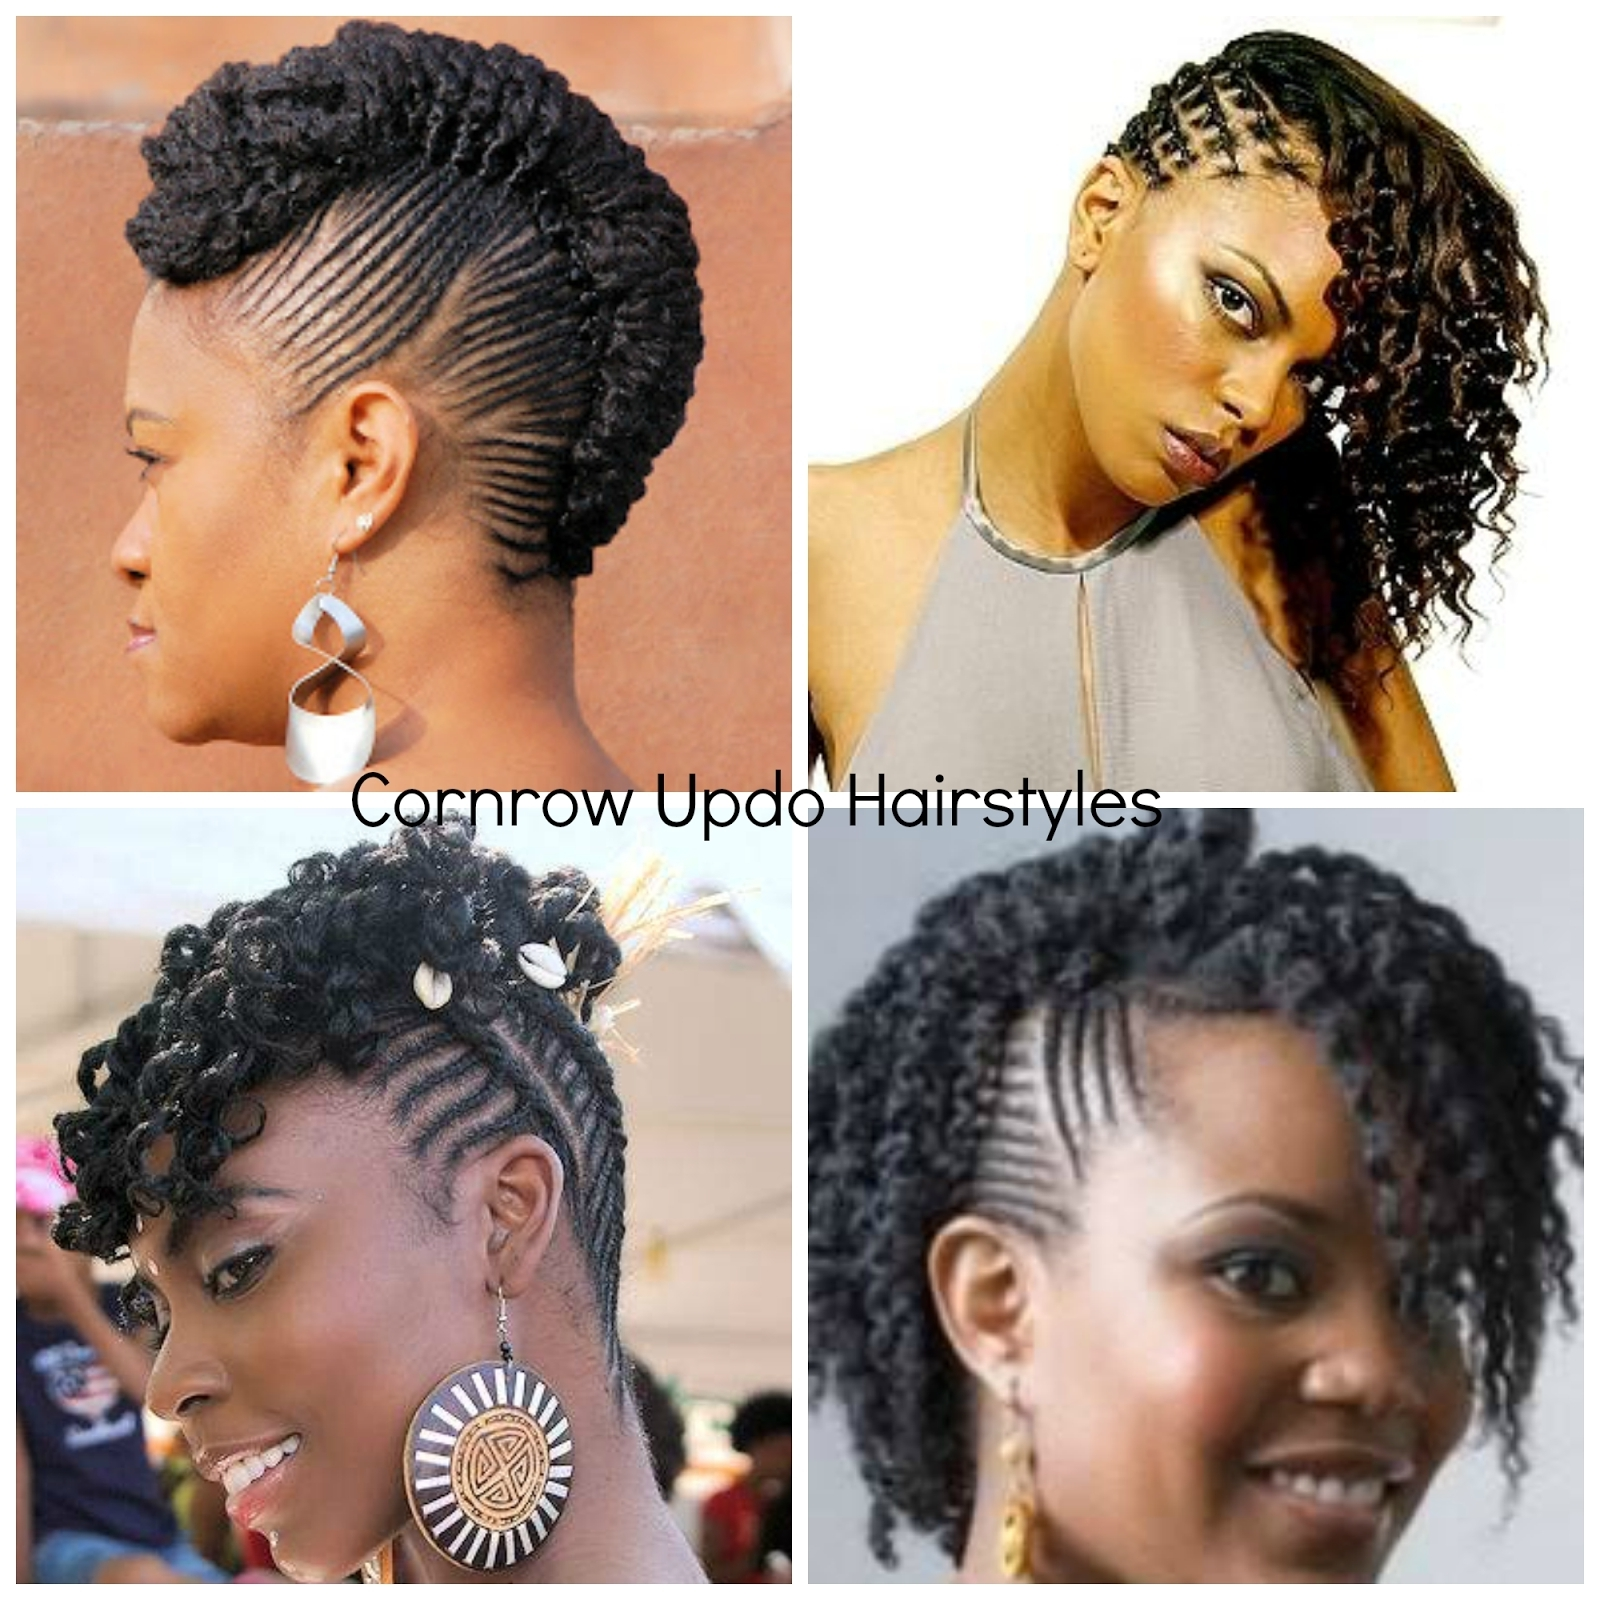 Bunch Ideas Of Cornrow Updo Hairstyles For Black Women Beautiful For Cornrow Updo Hairstyles For Black Women (View 8 of 15)